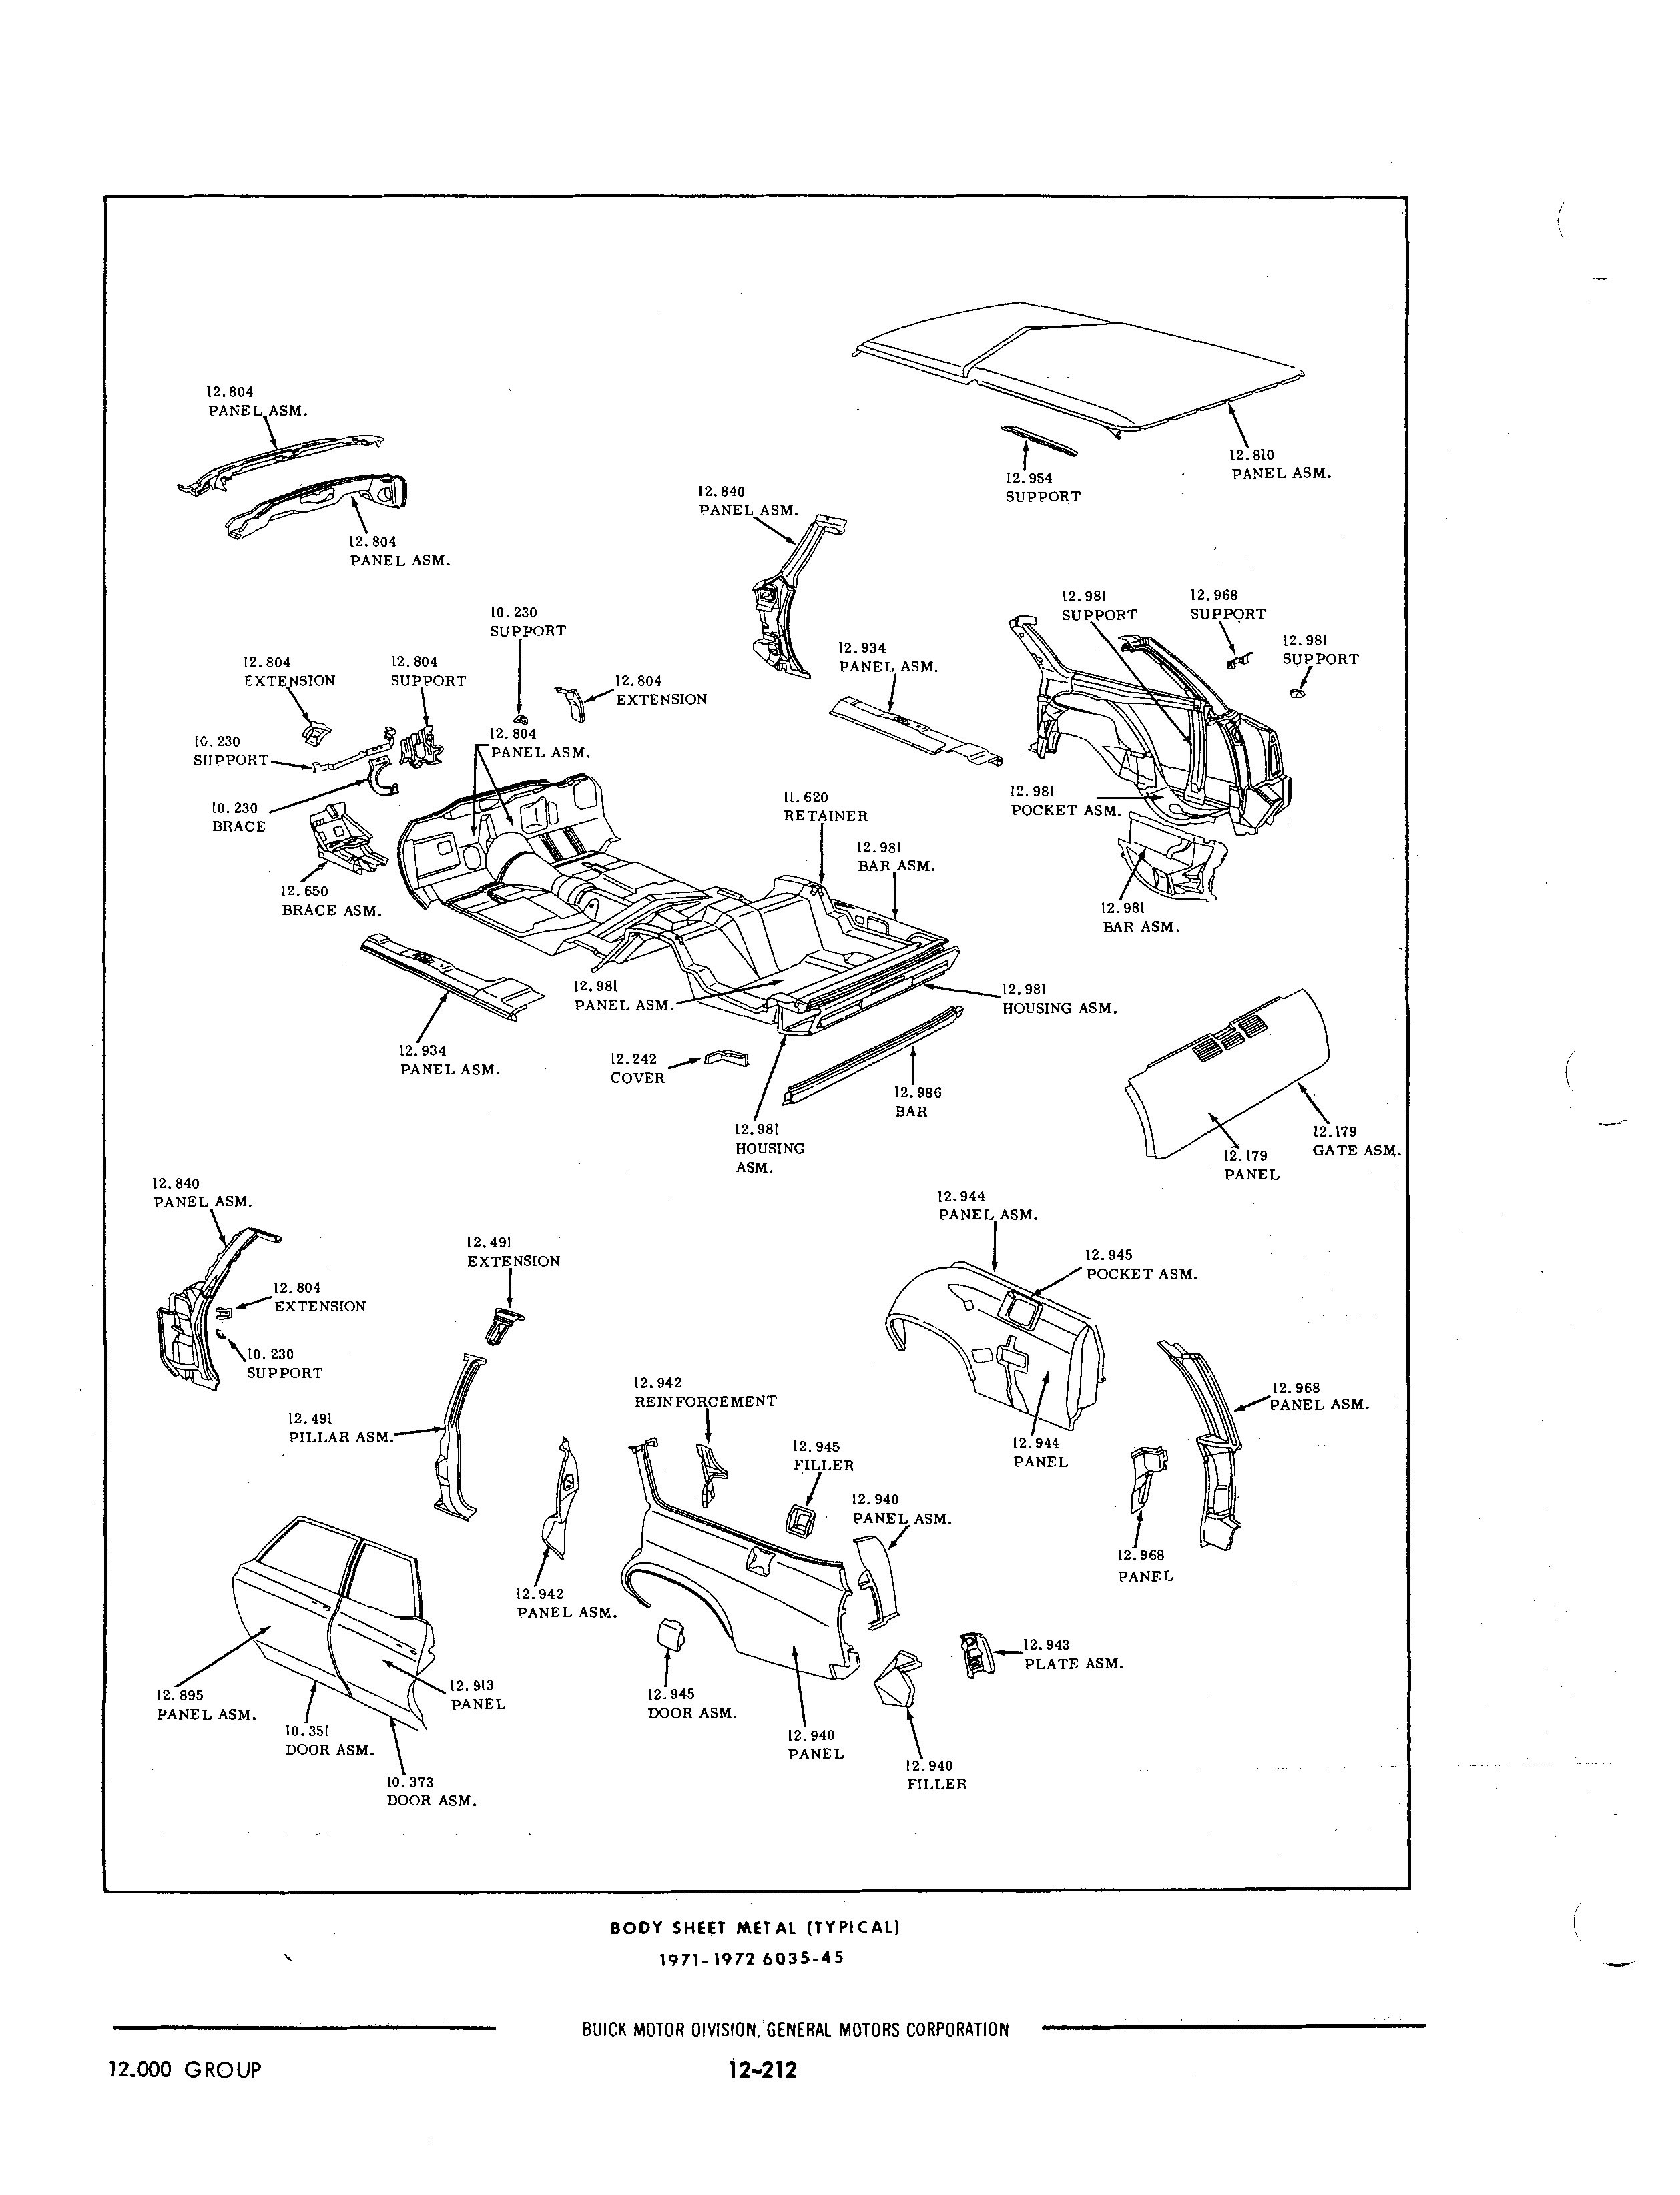 1937 Cadillac Engine Diagram Cadillac Auto Wiring Diagram